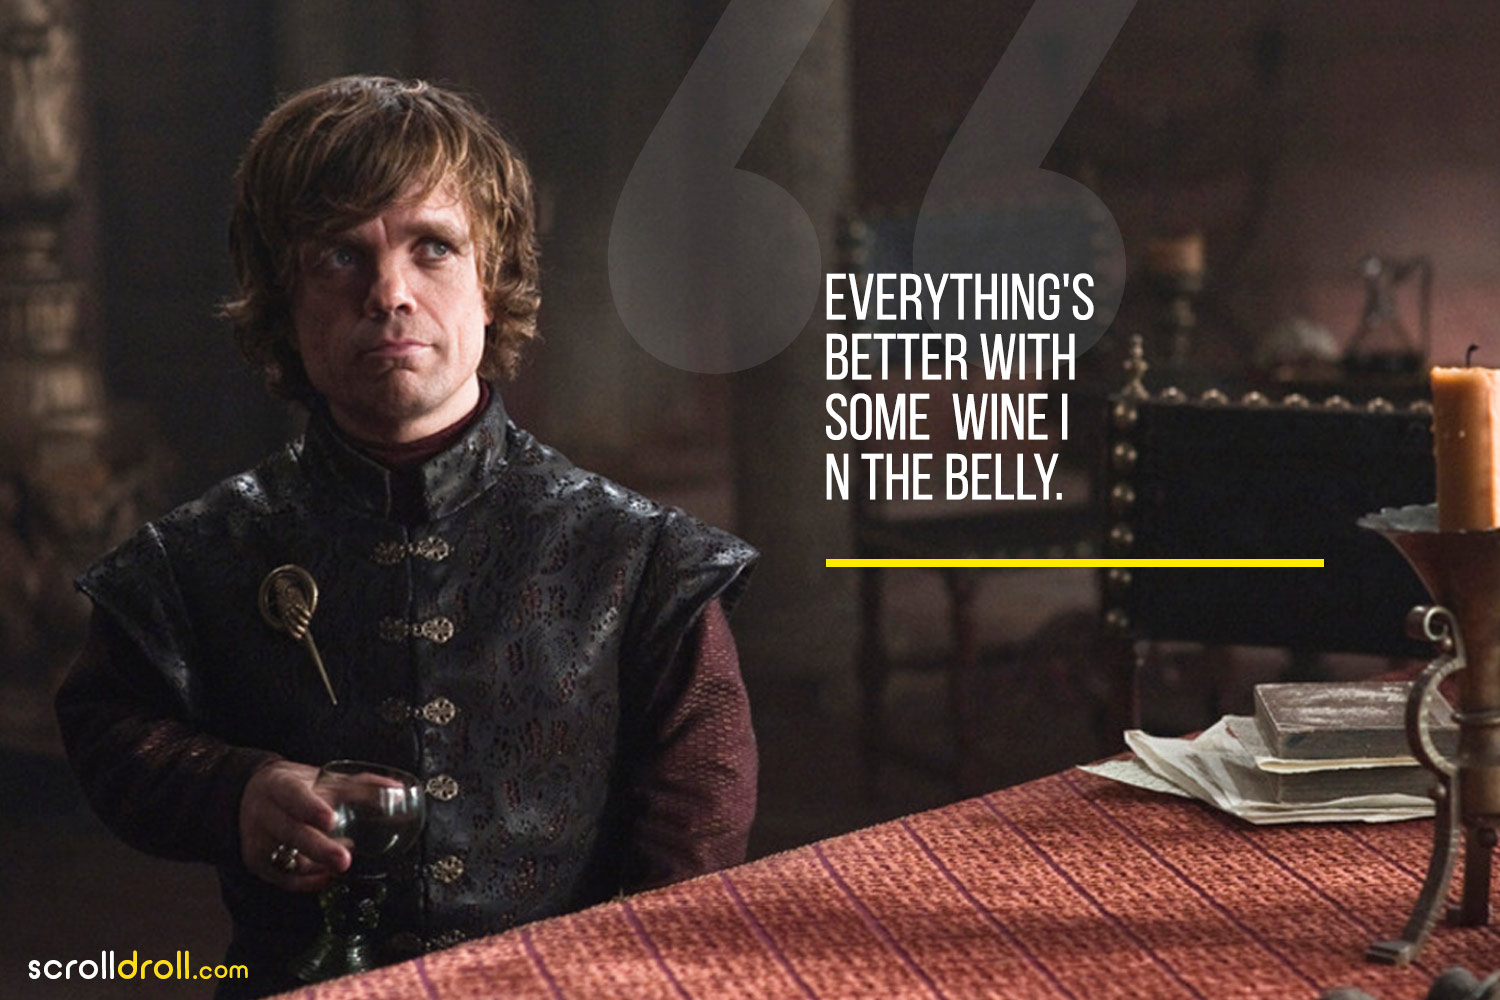 Tyrion-Everything's better with some wine in the belly